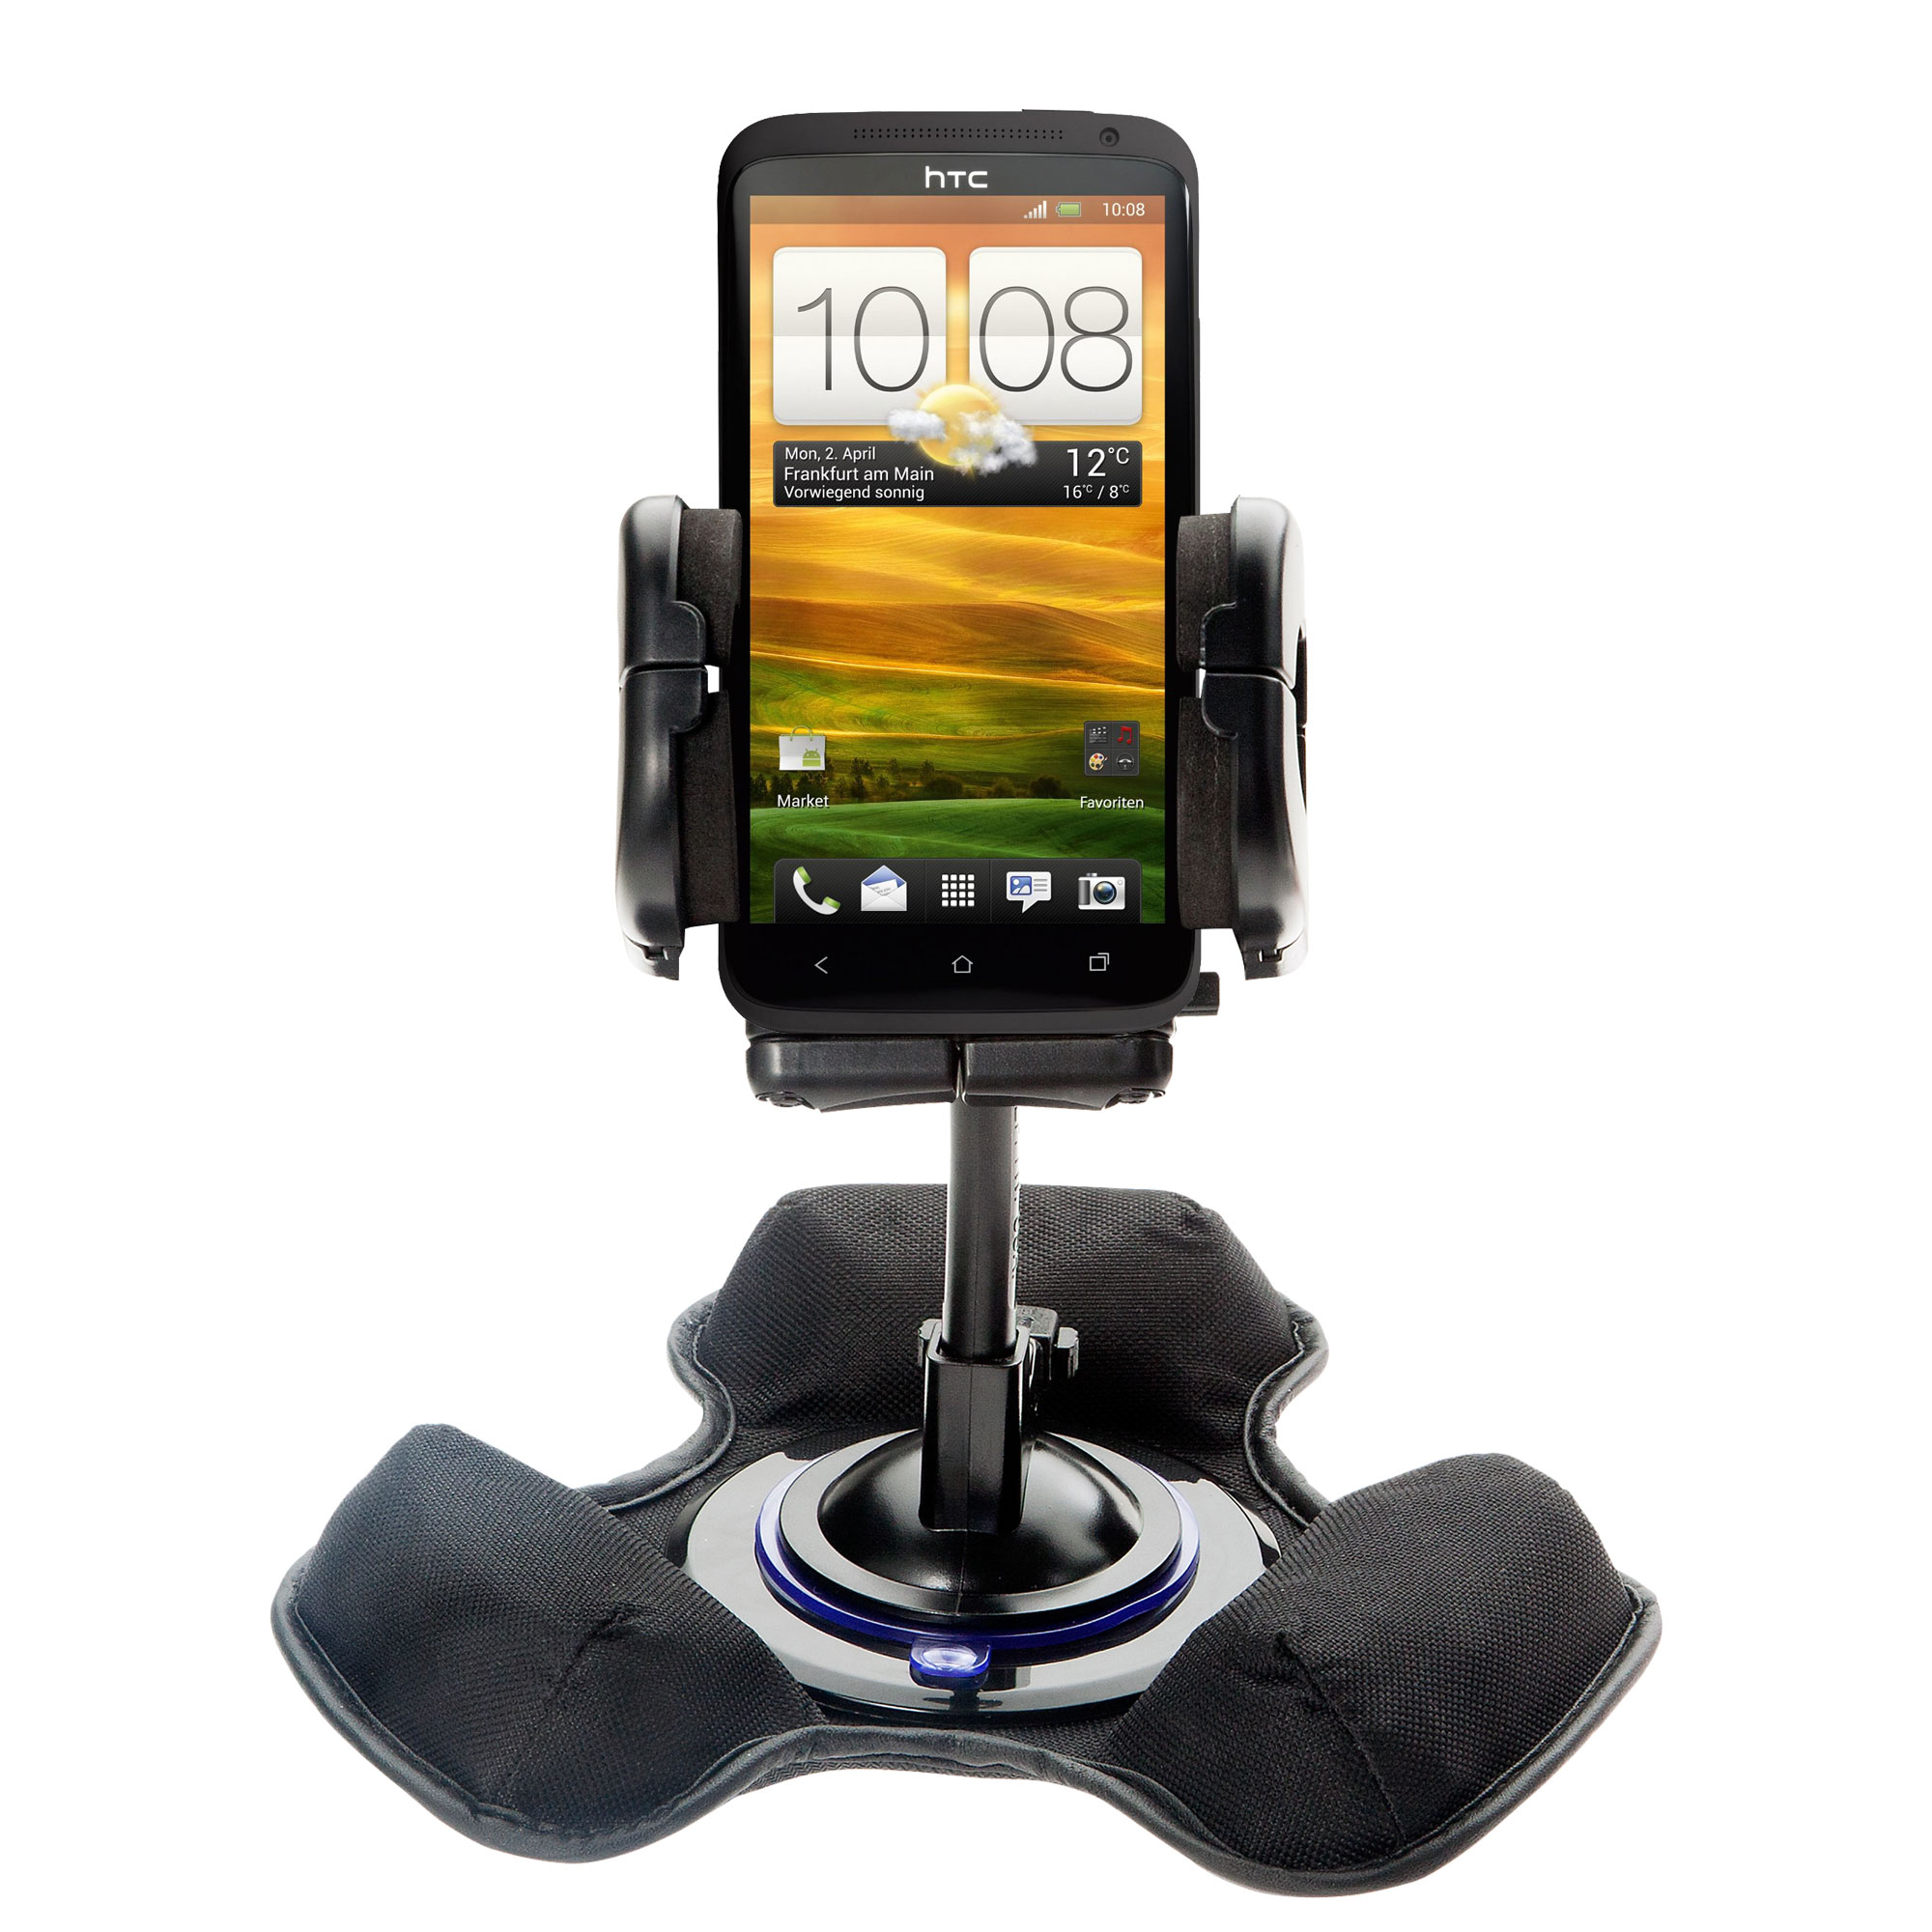 Dash and Windshield Holder compatible with the HTC One X